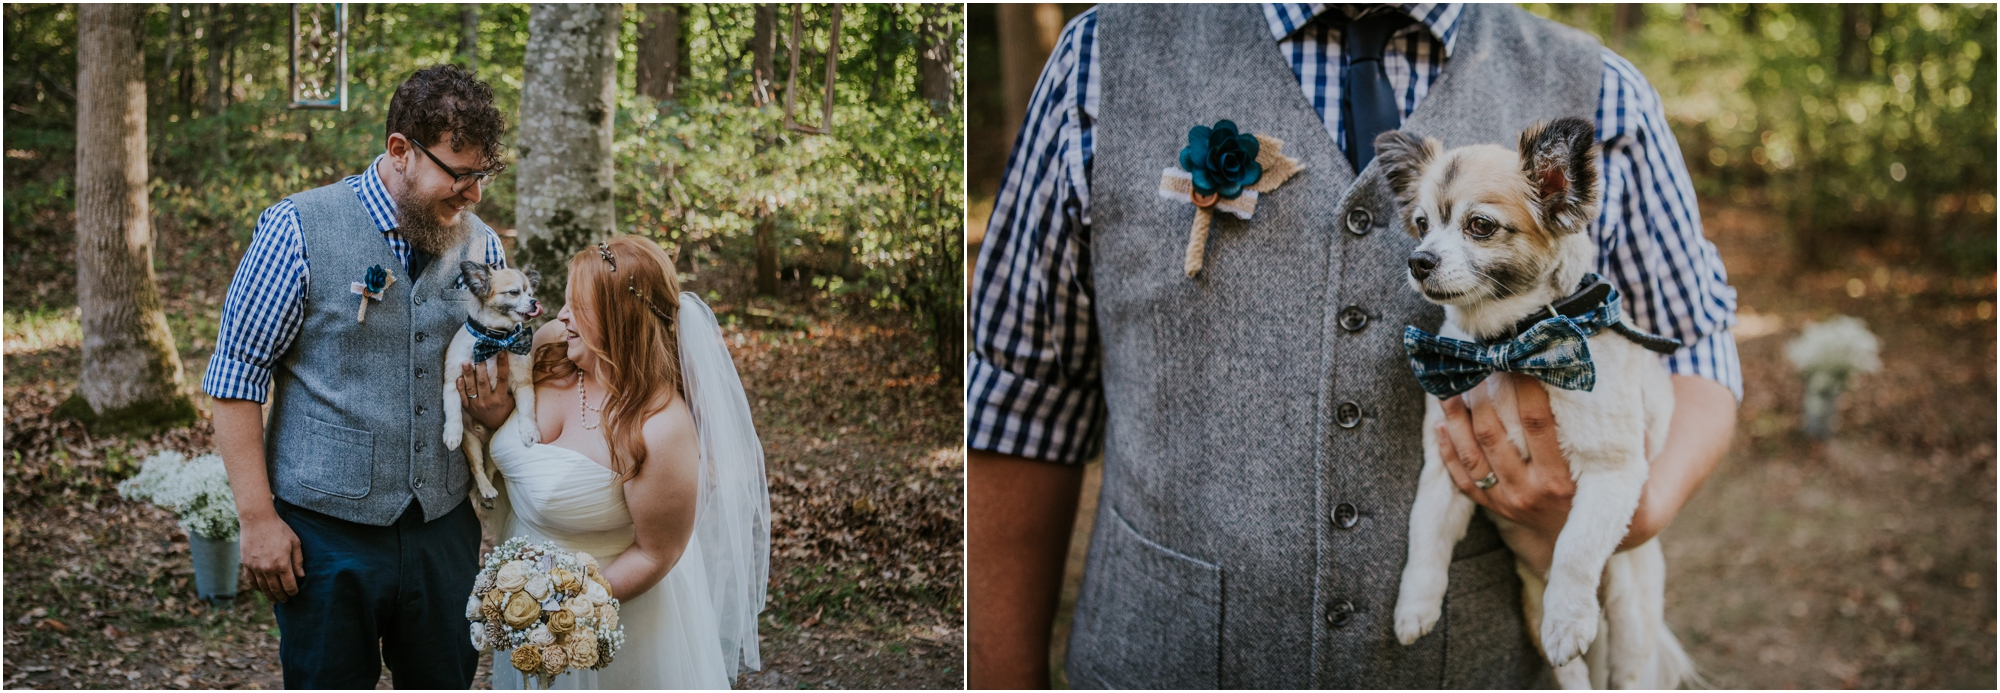 abingdon-virginia-rustic-fall-4hcenter-wedding-photography_0061.jpg